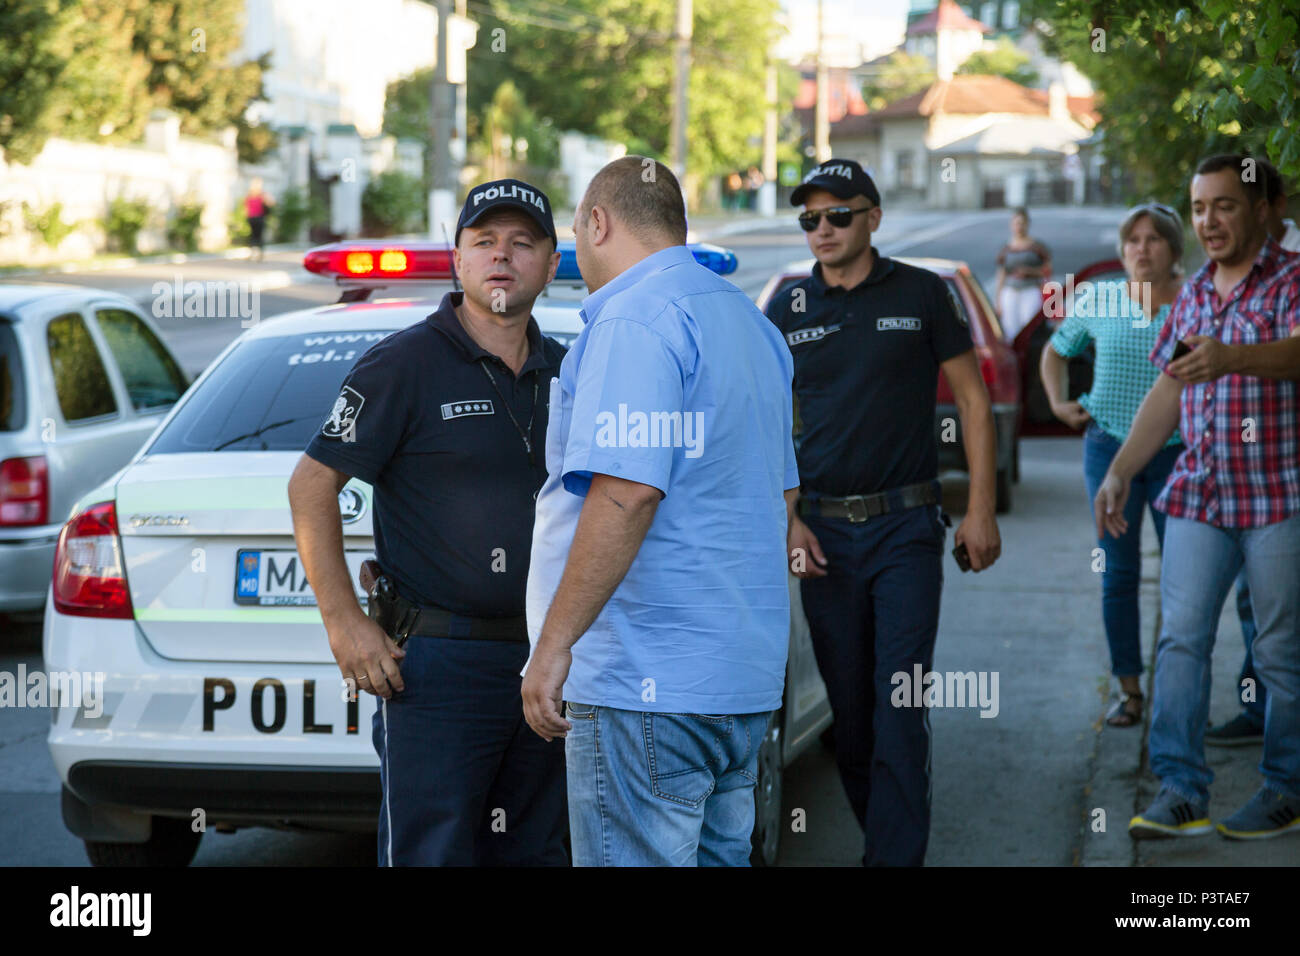 Republic of Moldova, Chisinau - police action for a disagreement among citizens - Stock Image